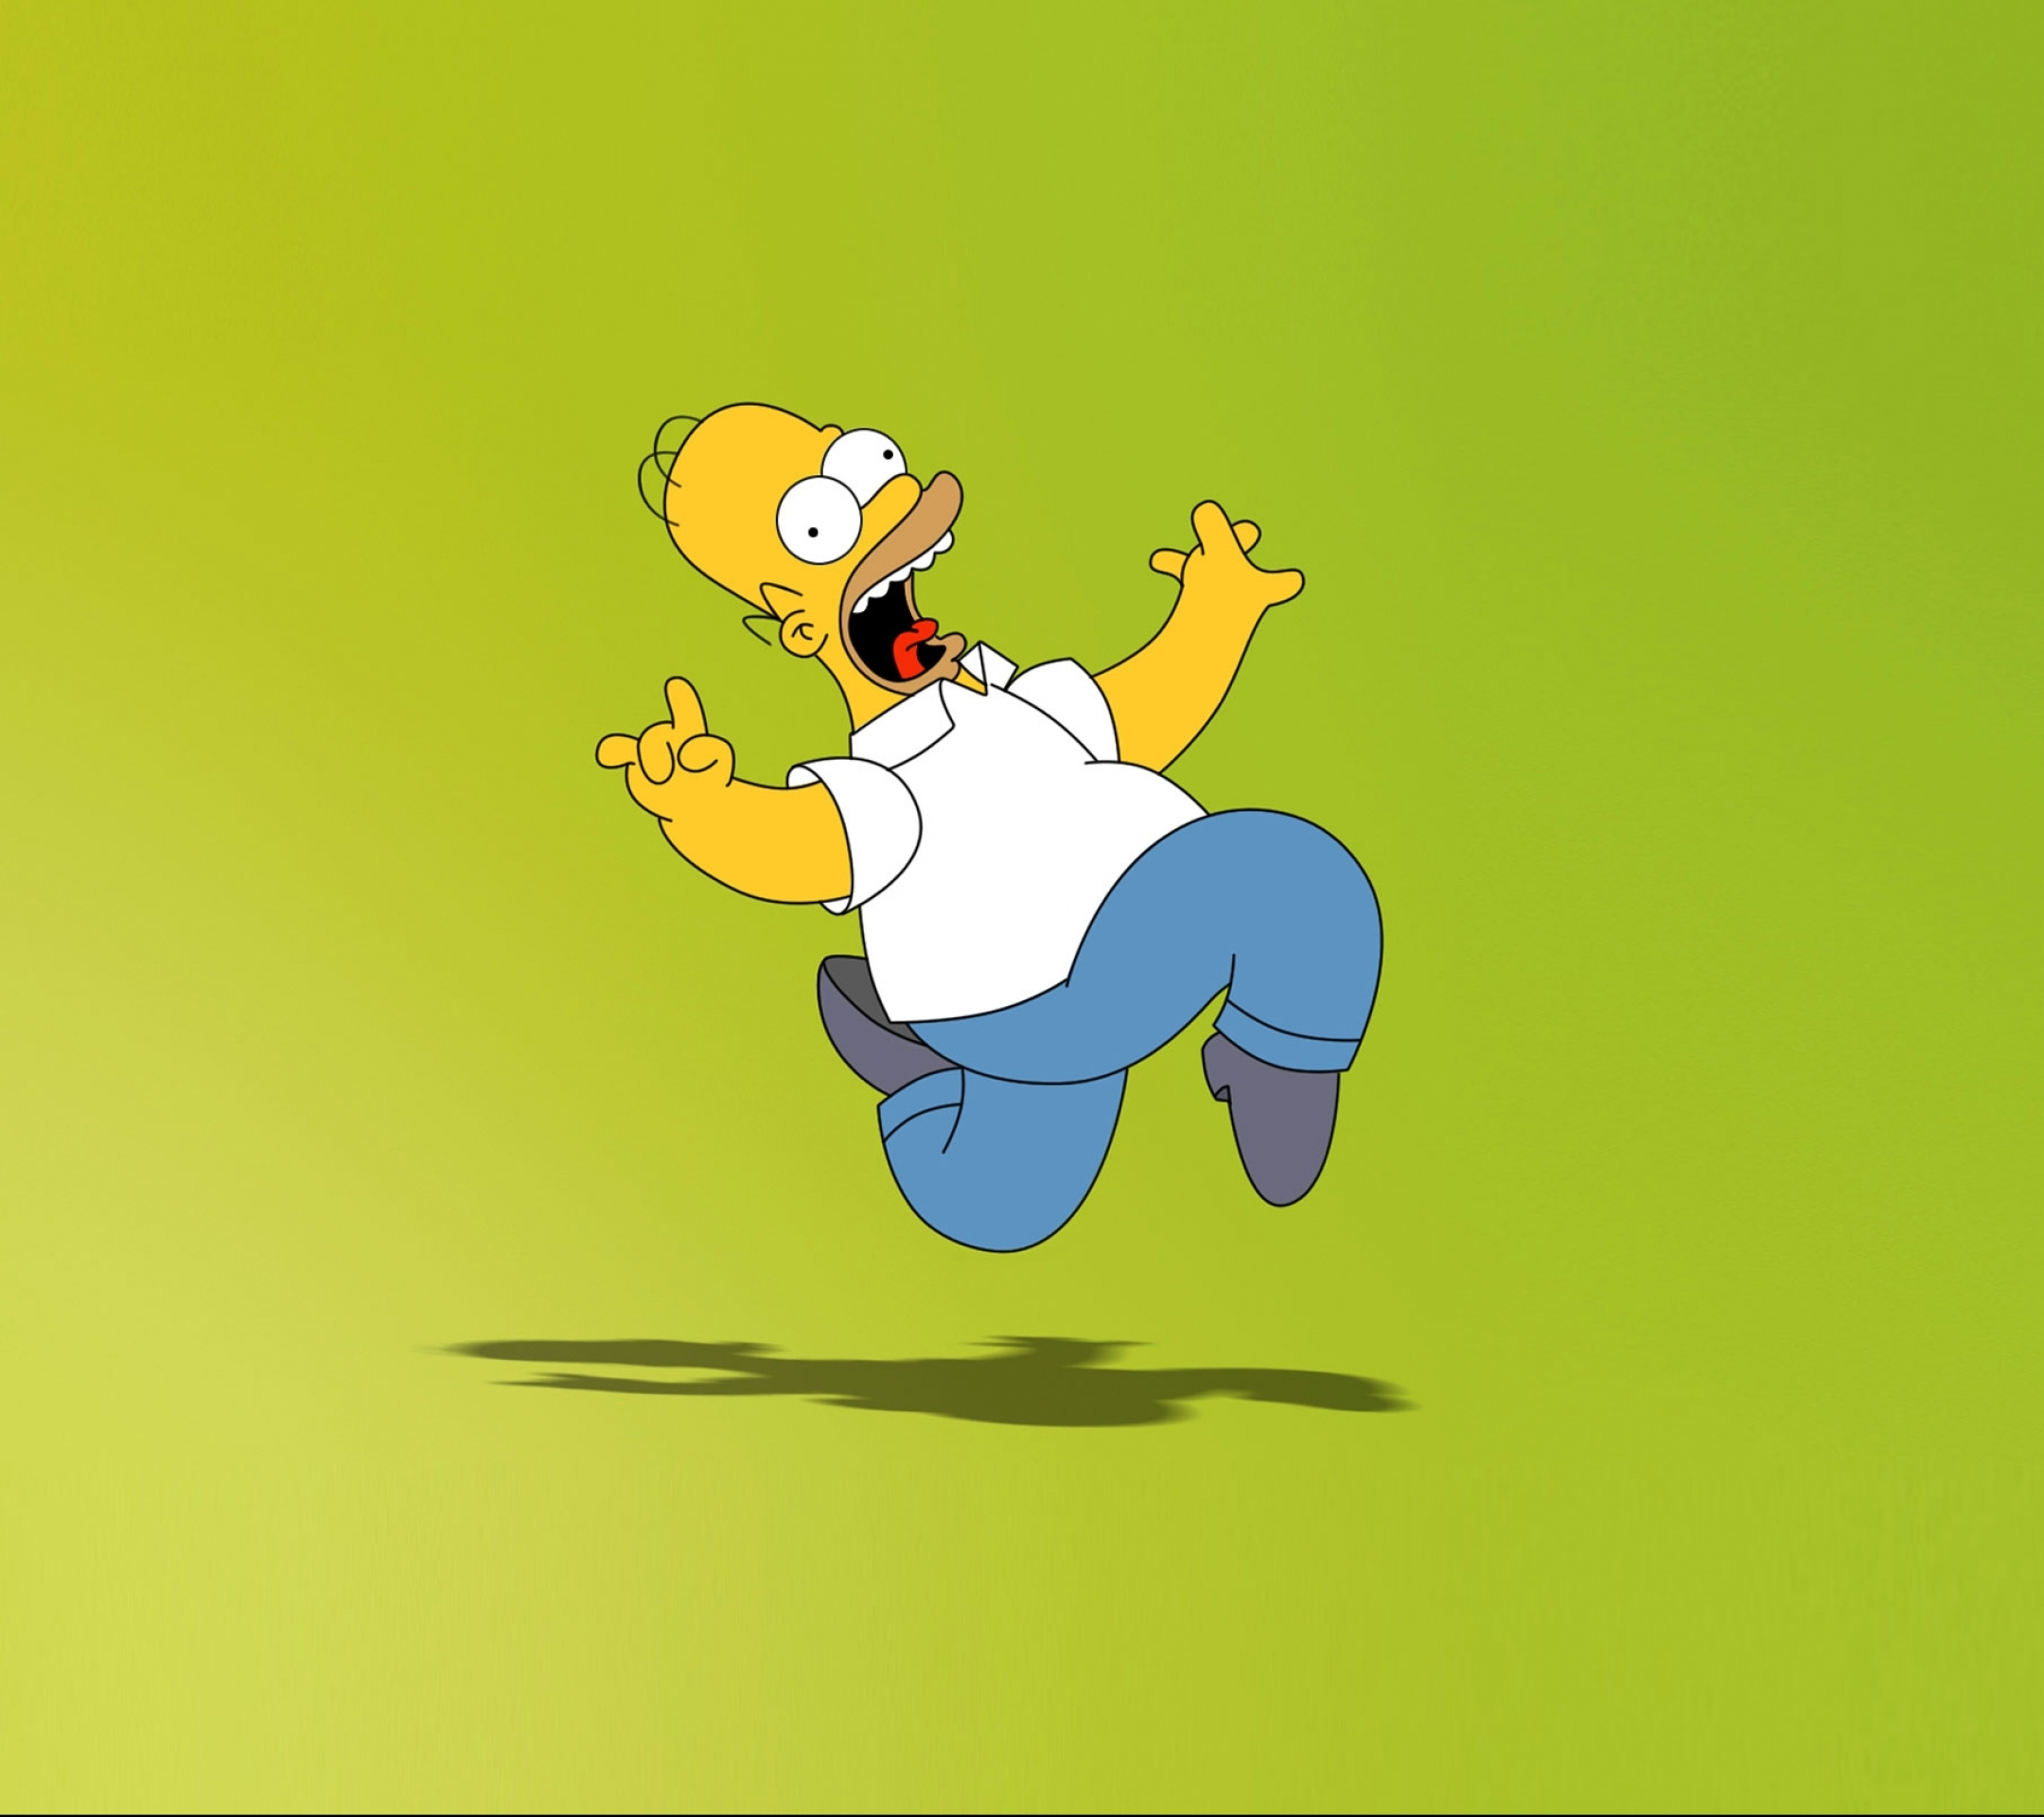 TV Show/The Simpsons (2160x1920) Wallpaper ID: 158765 - Mobile Abyss